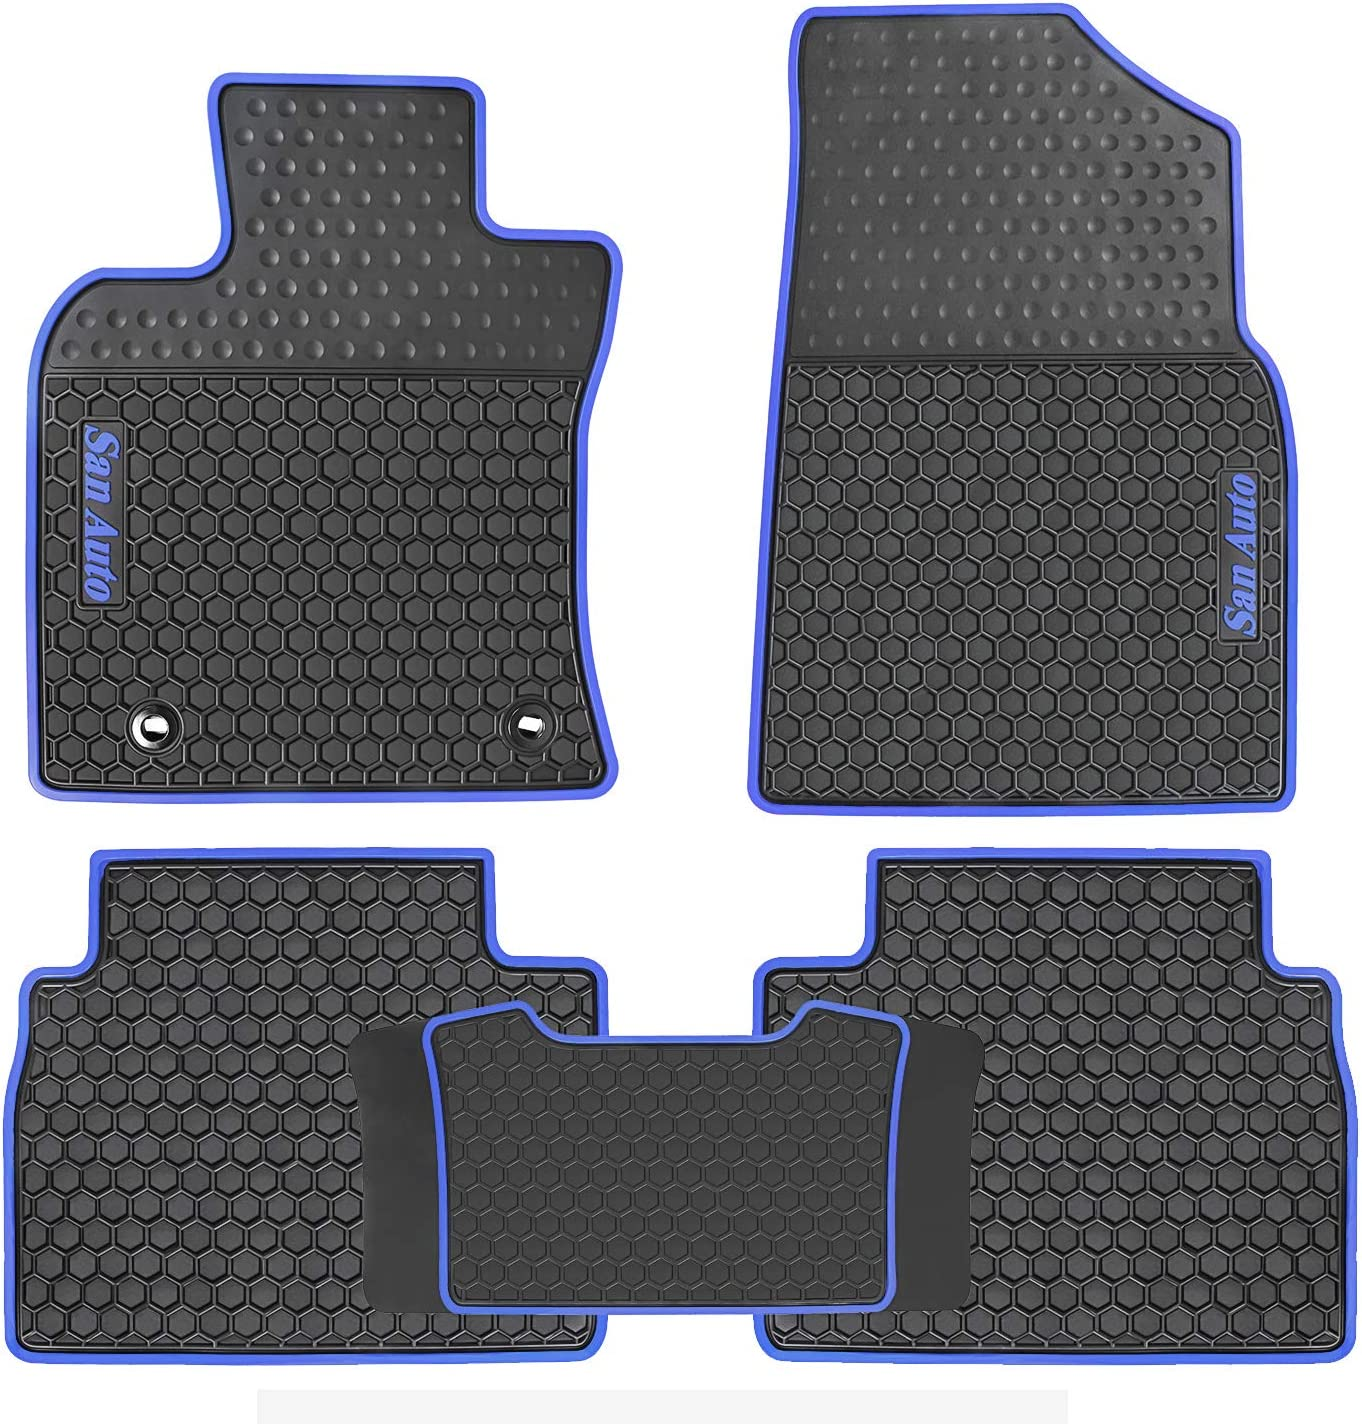 San Auto Car Floor Mats for Toyota Camry 7th 2012 2013 2014 2015 2016 2017 Custom Fit Auto Front and Rear Rubber Carpet Floor Liners Set All Weather Protection Heavy Duty Odorless Black with Blue Edge